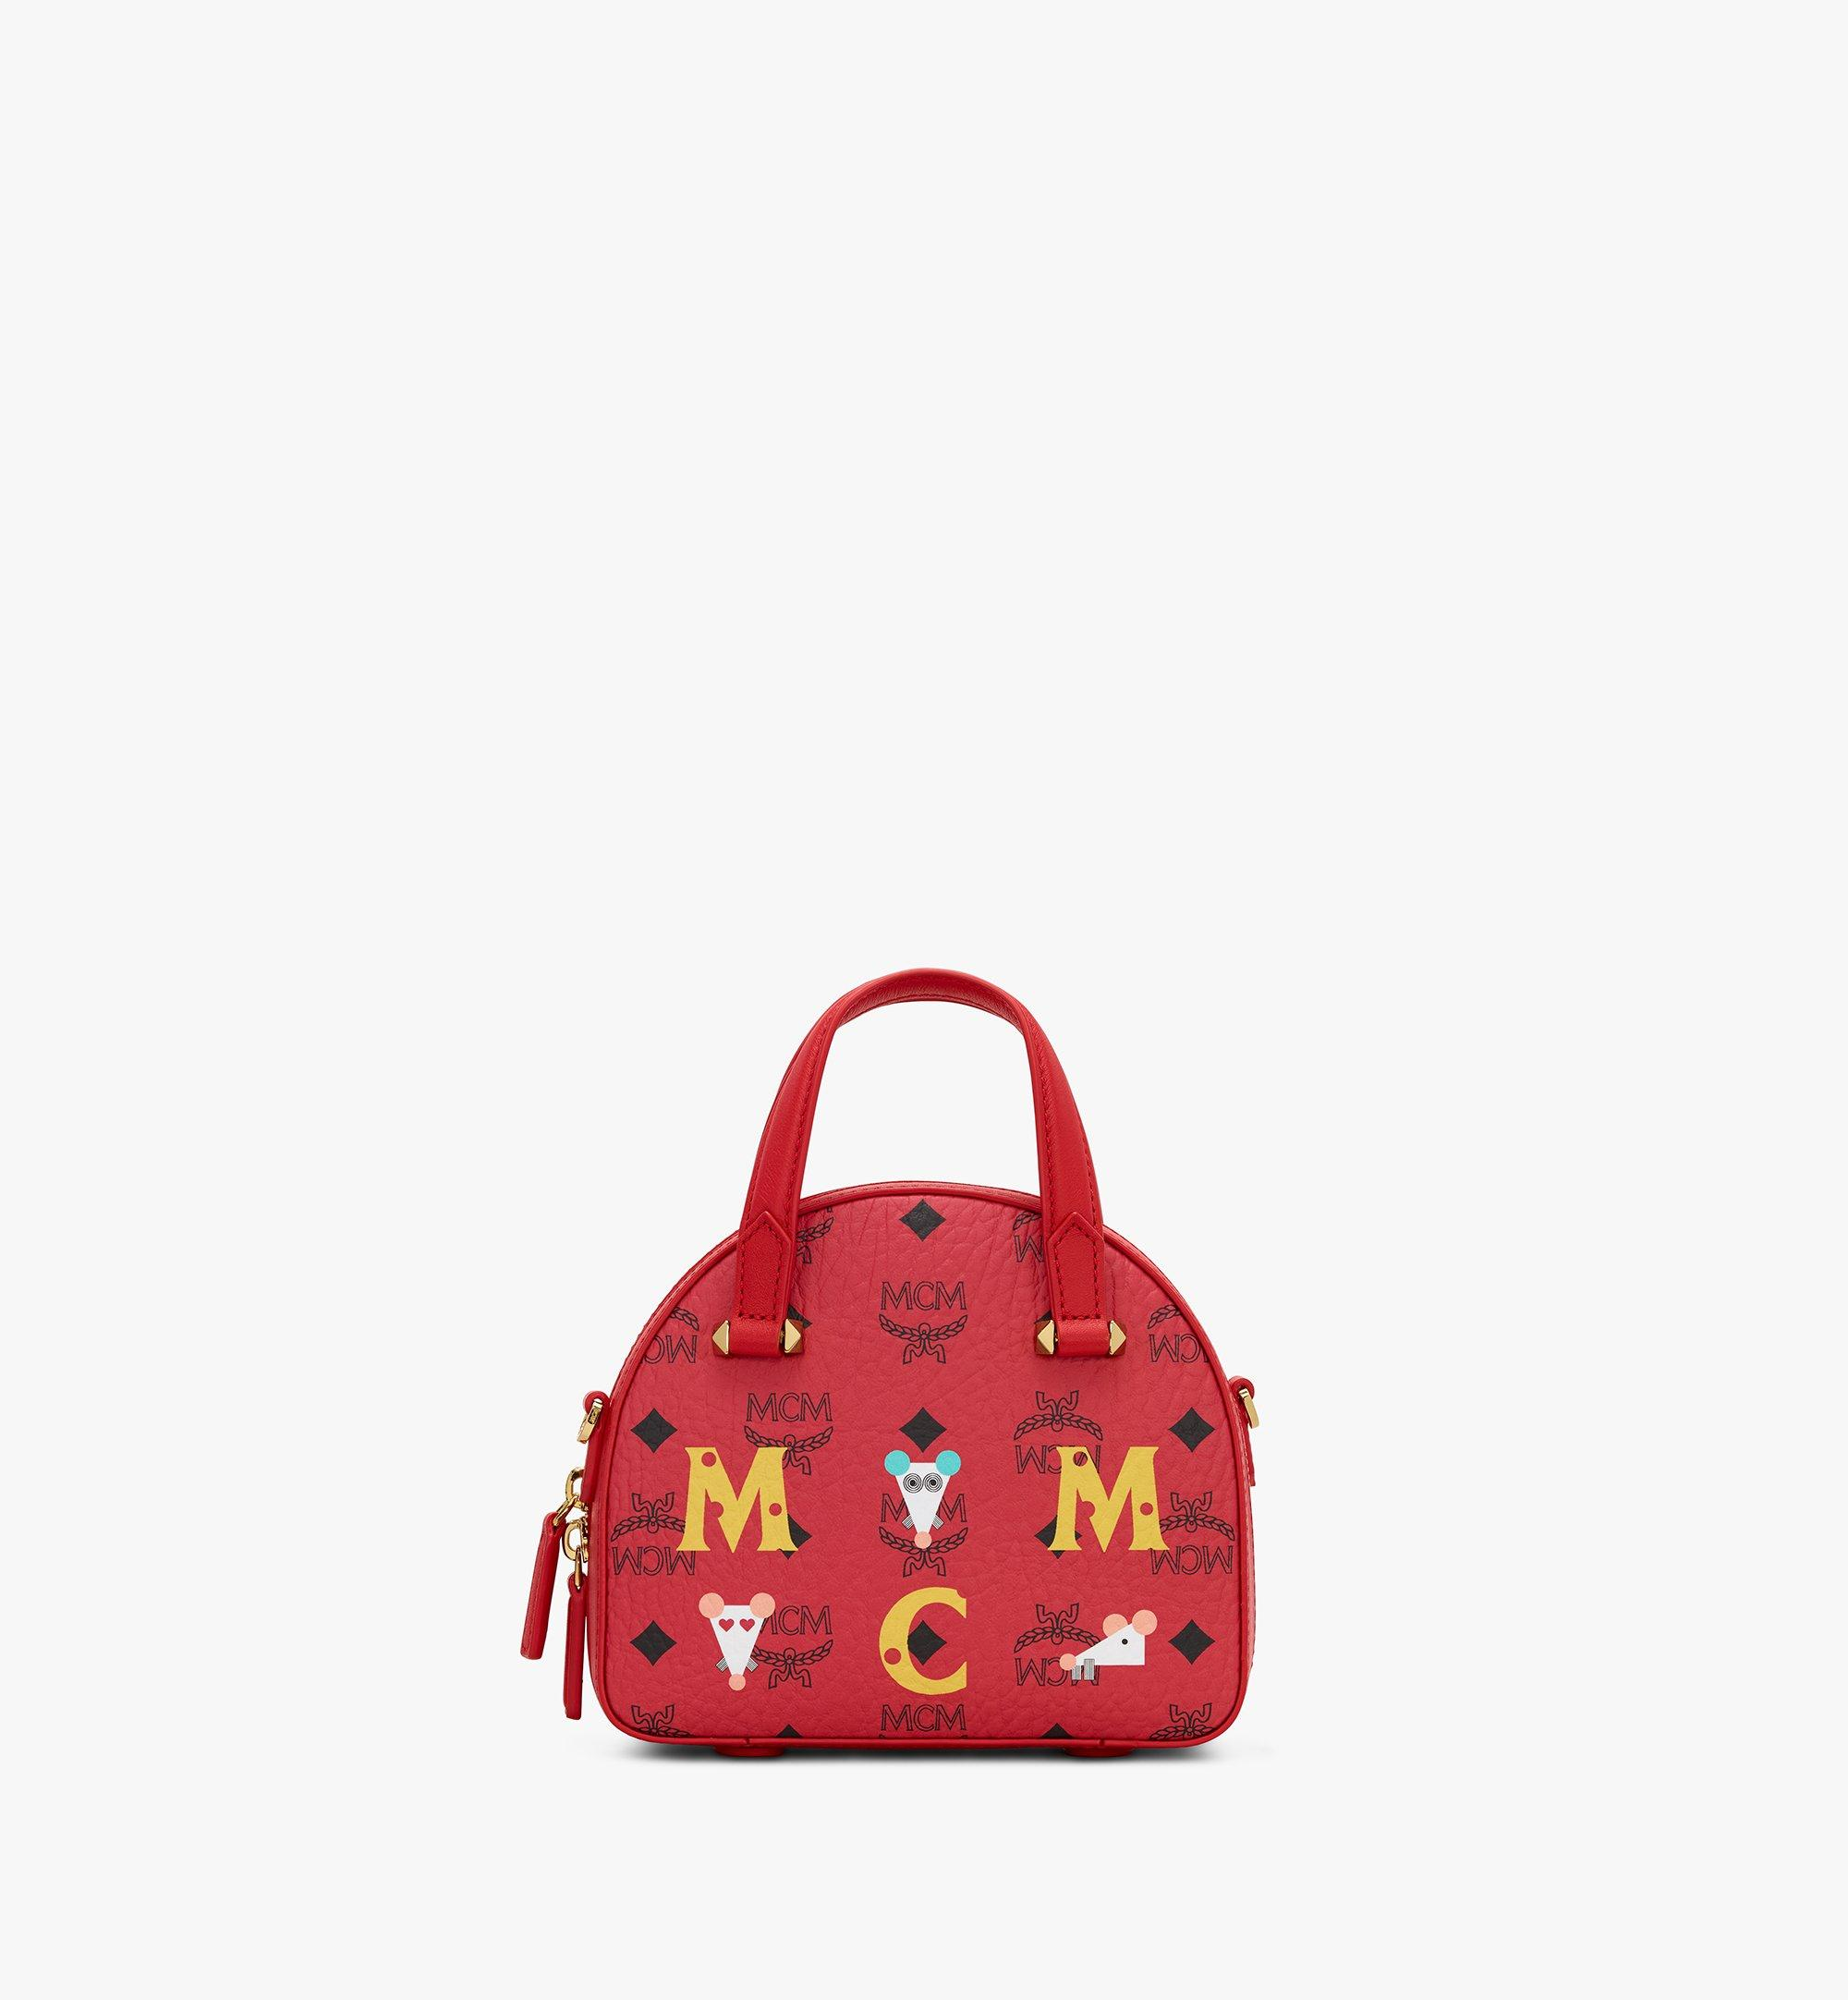 MCM Chinese New Year Essential Disco Tote Red MWTASSE09RJ001 Alternate View 1